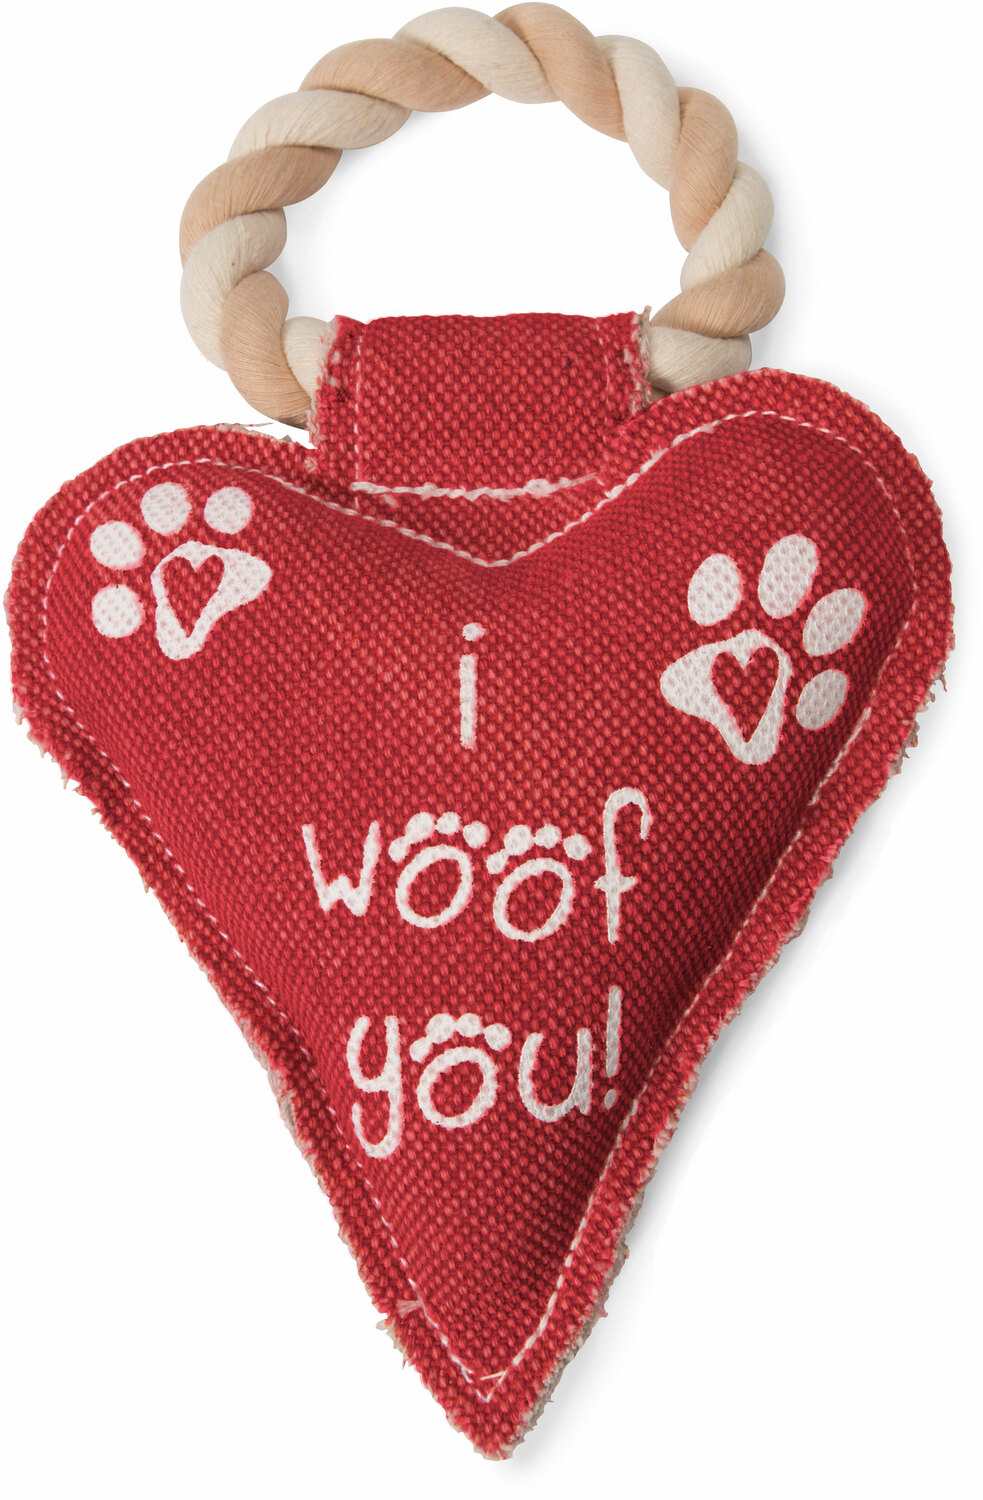 Heart Woof by Pavilion's Pets - I Woof You Heart Shaped Sturdy Canvas Tug of War Dog Toy